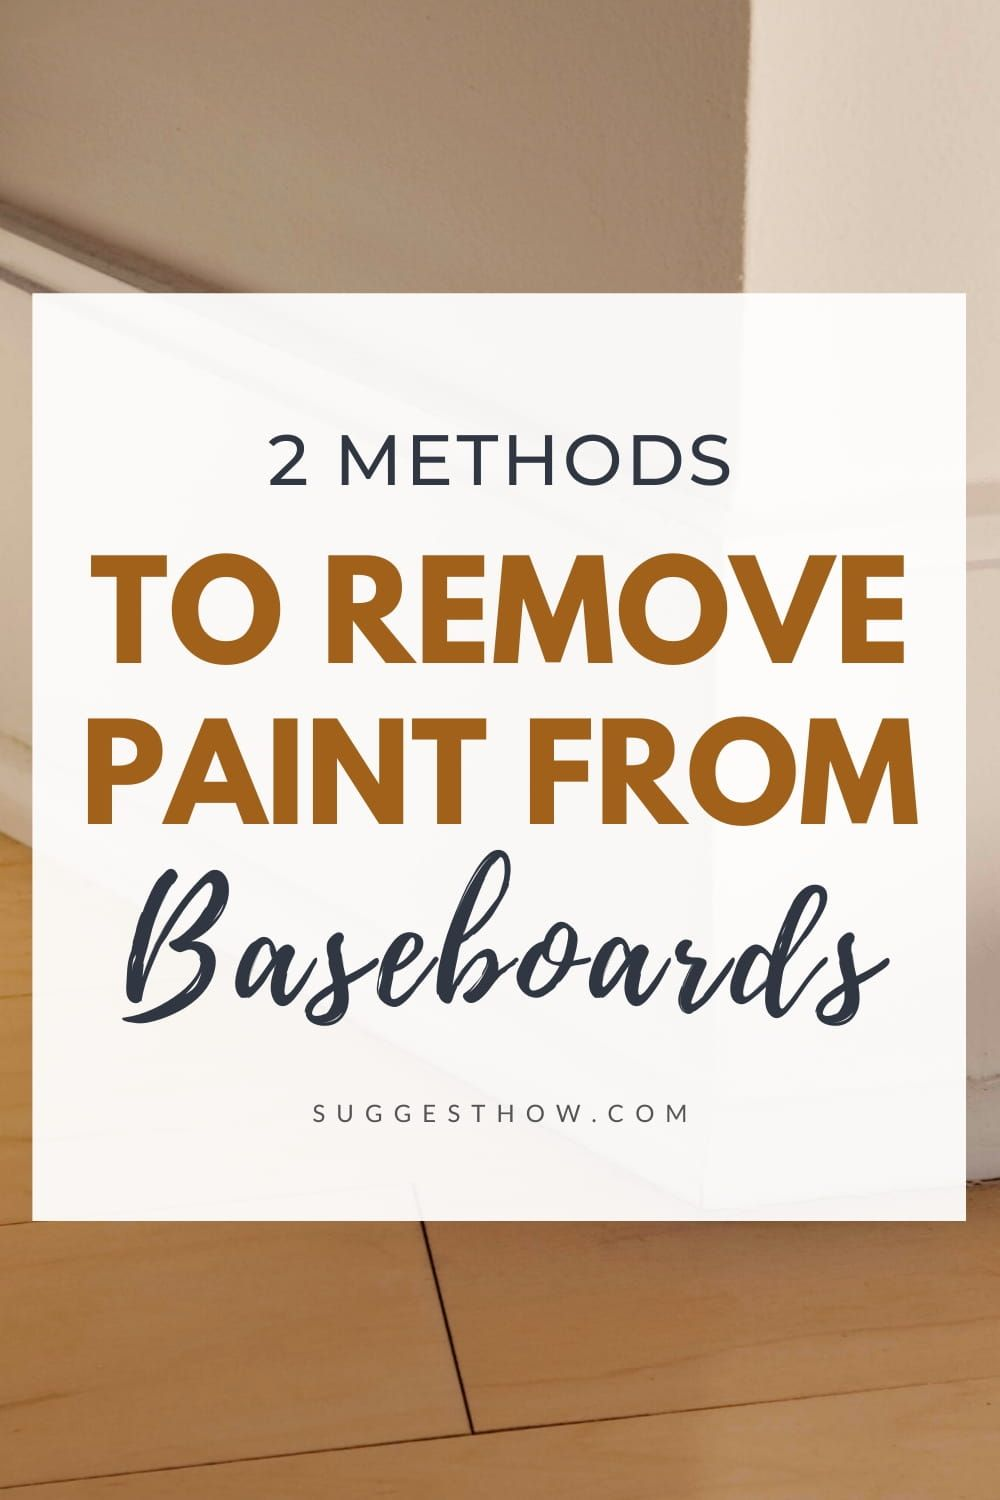 How to Remove Paint from Baseboards 2 Super Easy Methods